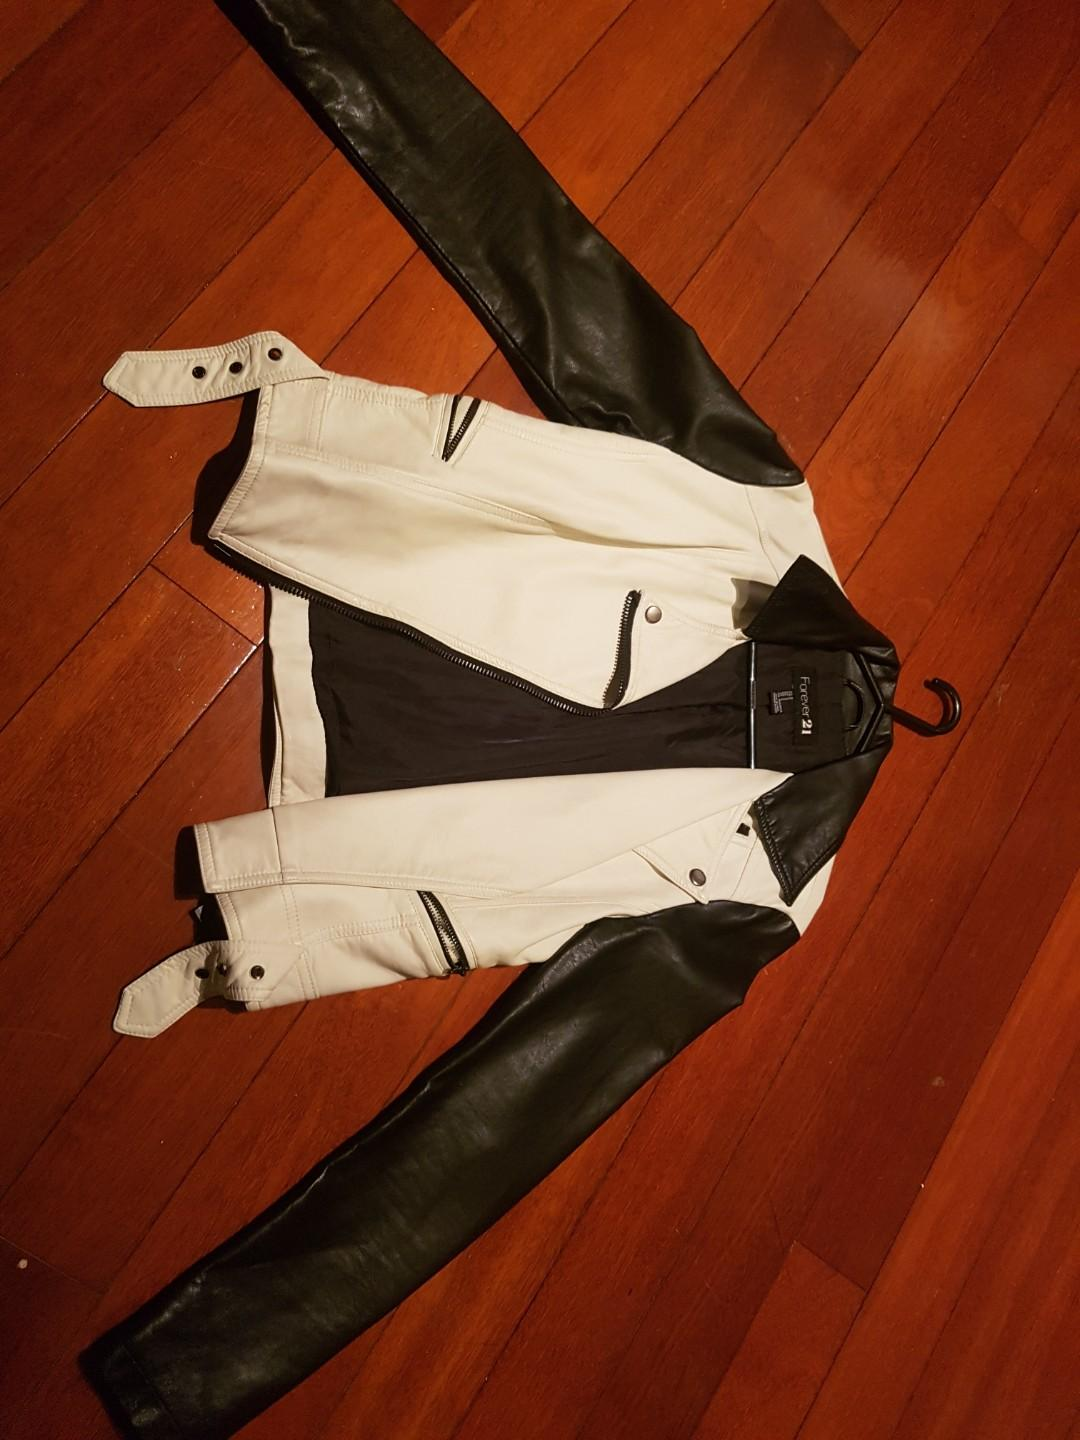 wardrobe sale all quality brands most new